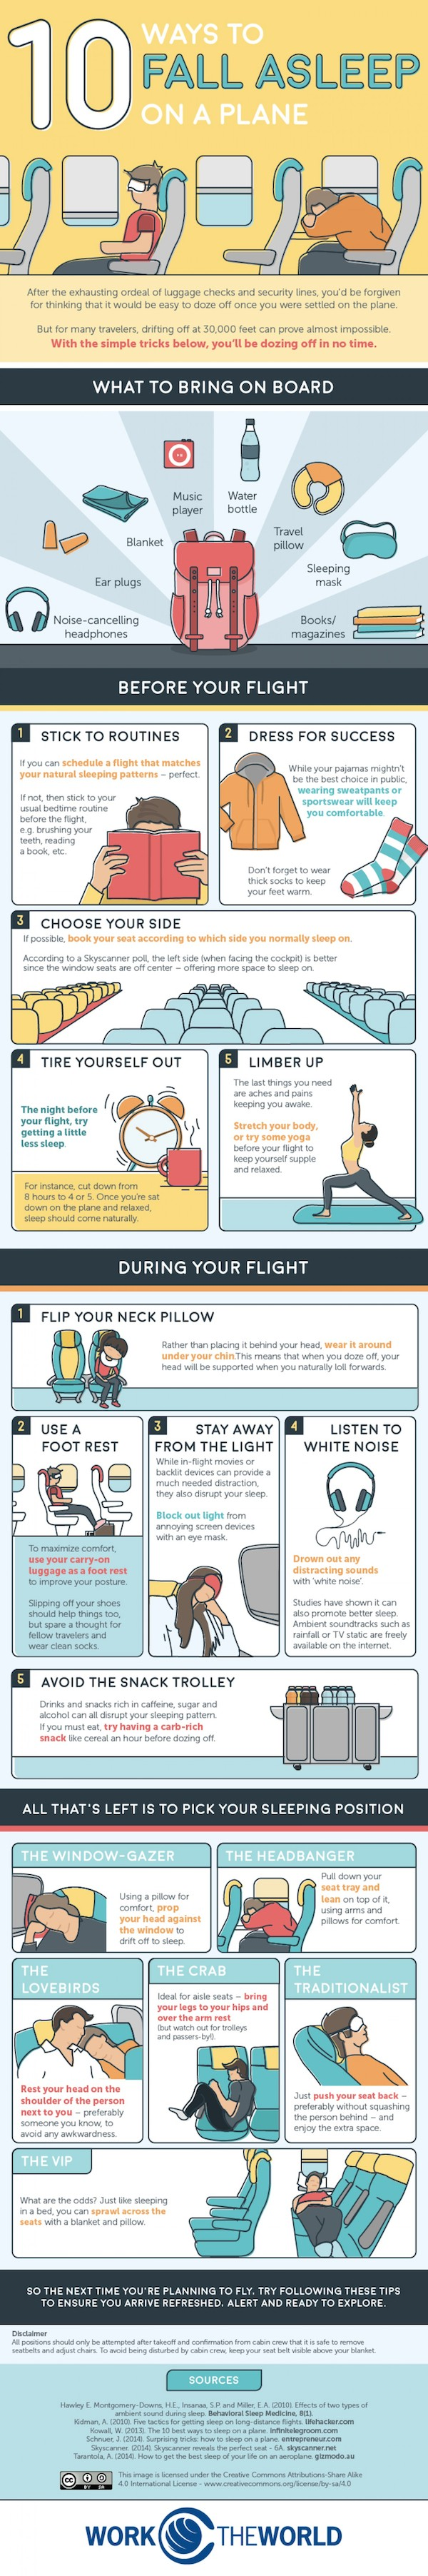 how to help your ears on a plane